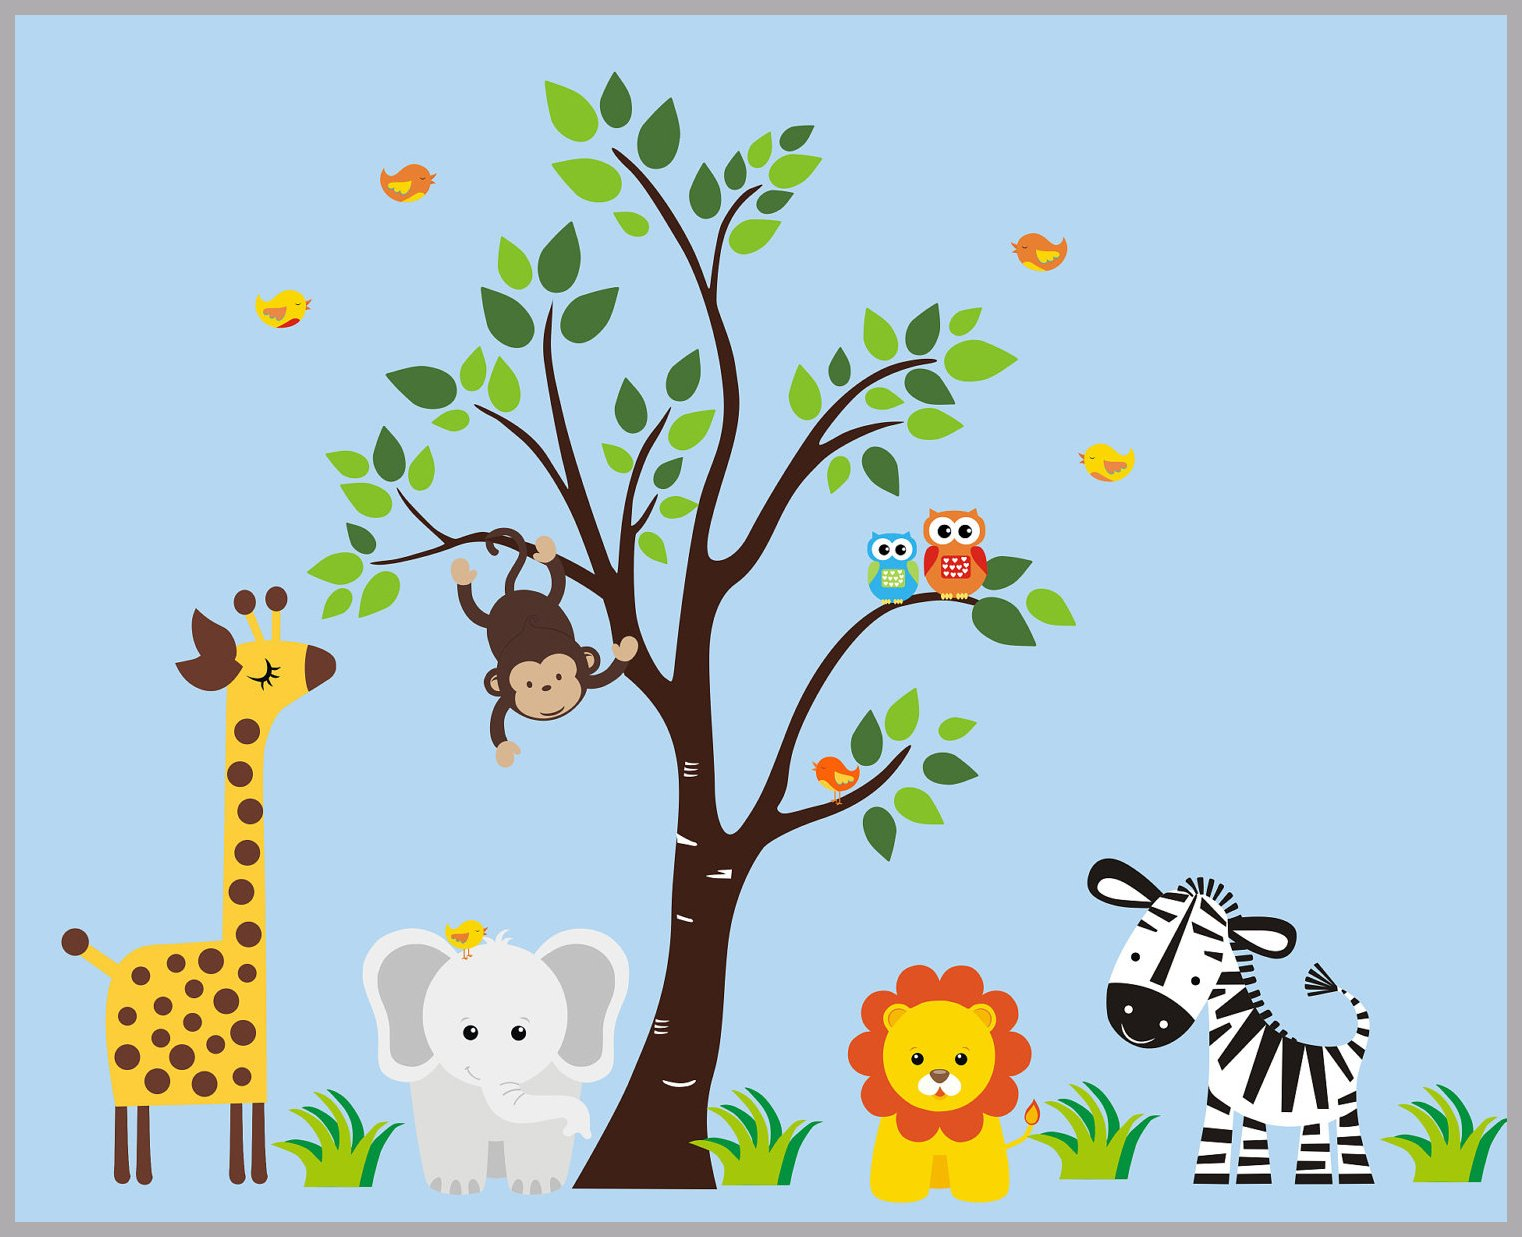 Zoo Animal Wall Decals Jungle Wall Decals Safari Wall Decals Elephant Lion Zebra Tree Stickers Nursery Baby Room Decor 83 X 97 Animal Wall Decals Jungle Wall Stickers Nursery Wall Decals